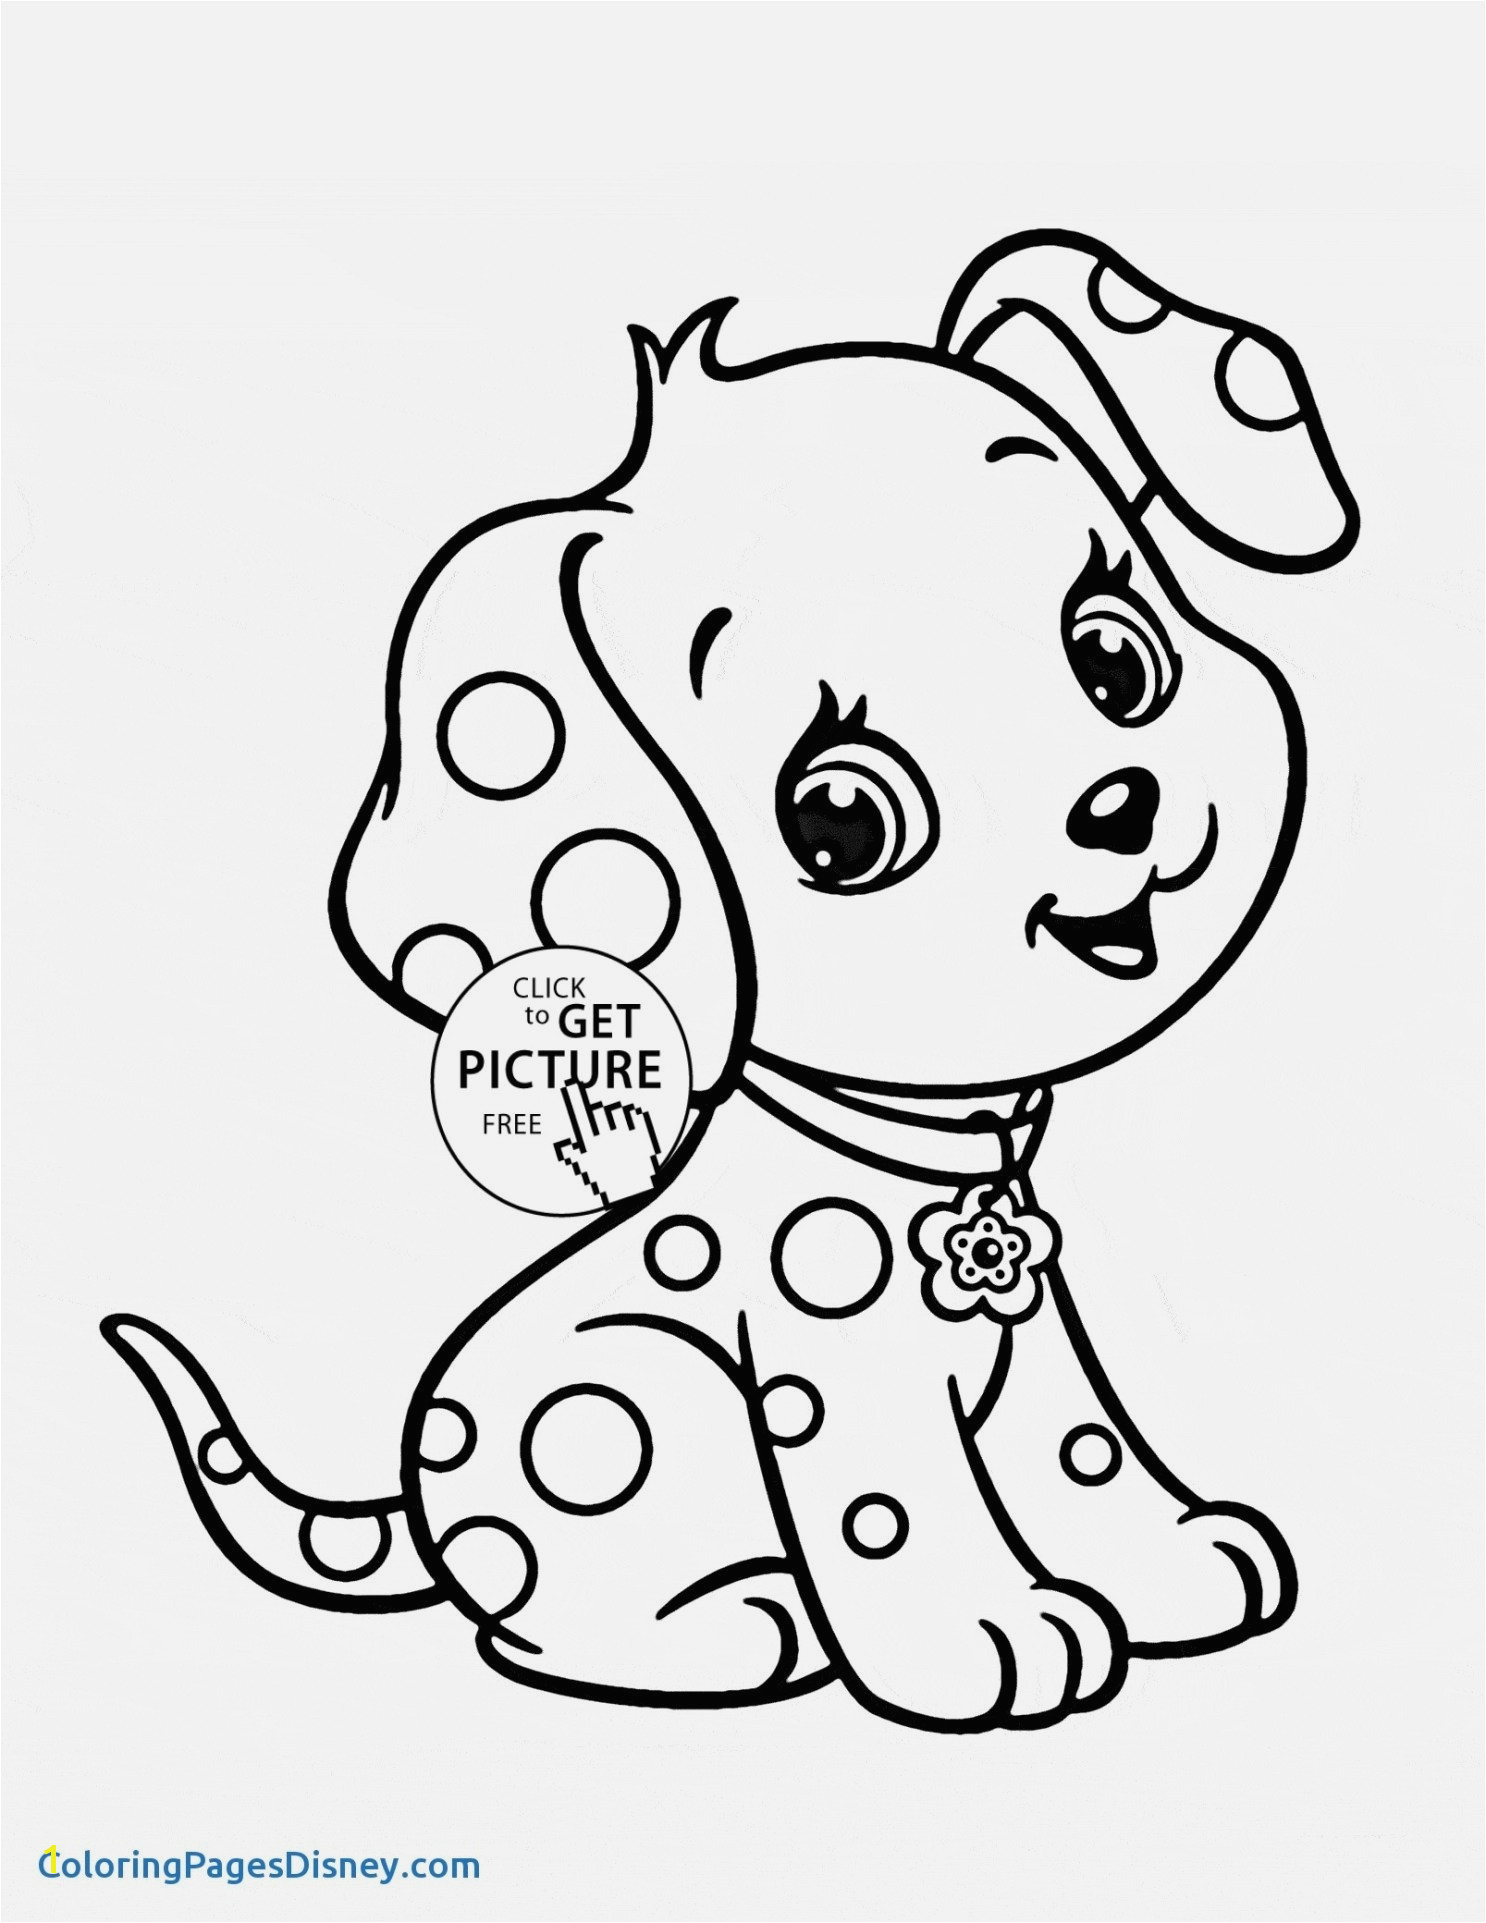 Disney Printable Coloring Pages Halloween Free Fall Coloring Pages Fall Coloring Pages Free Beautiful S Lovely